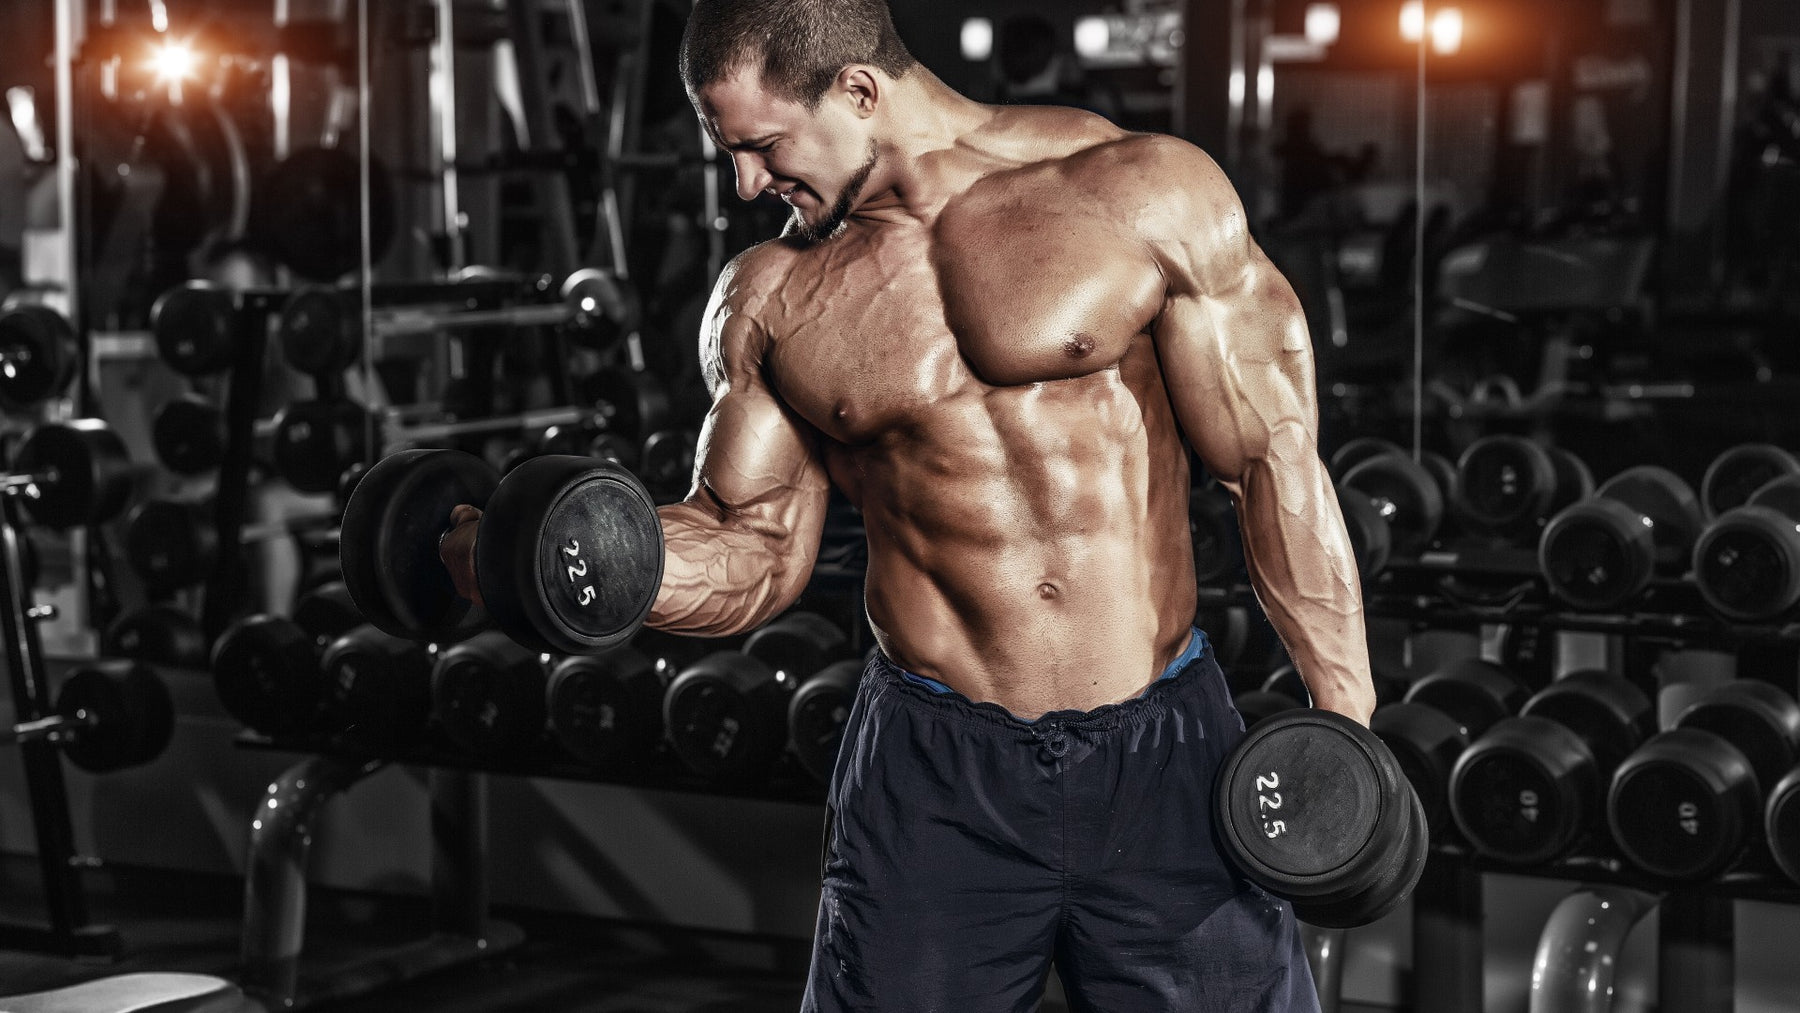 How to Get Bigger Biceps: A Guide for Intermediate Lifters